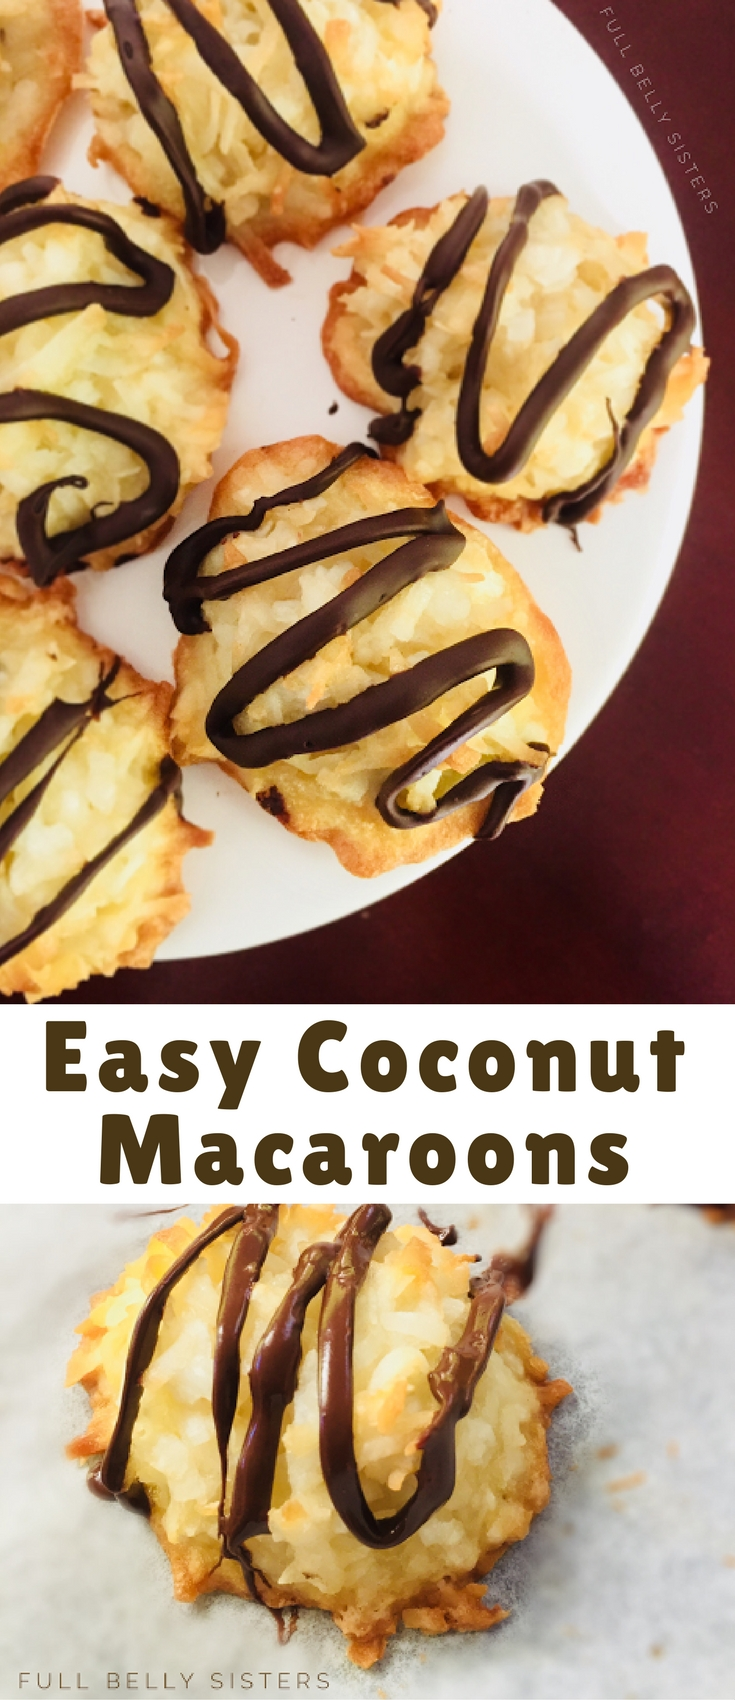 These Easy Coconut Macaroons are a lovely, delicious dessert that is—with just a few ingredients—simple to make. They're a perfect sweet treat alongside a cup of tea or on a holiday cookie platter!